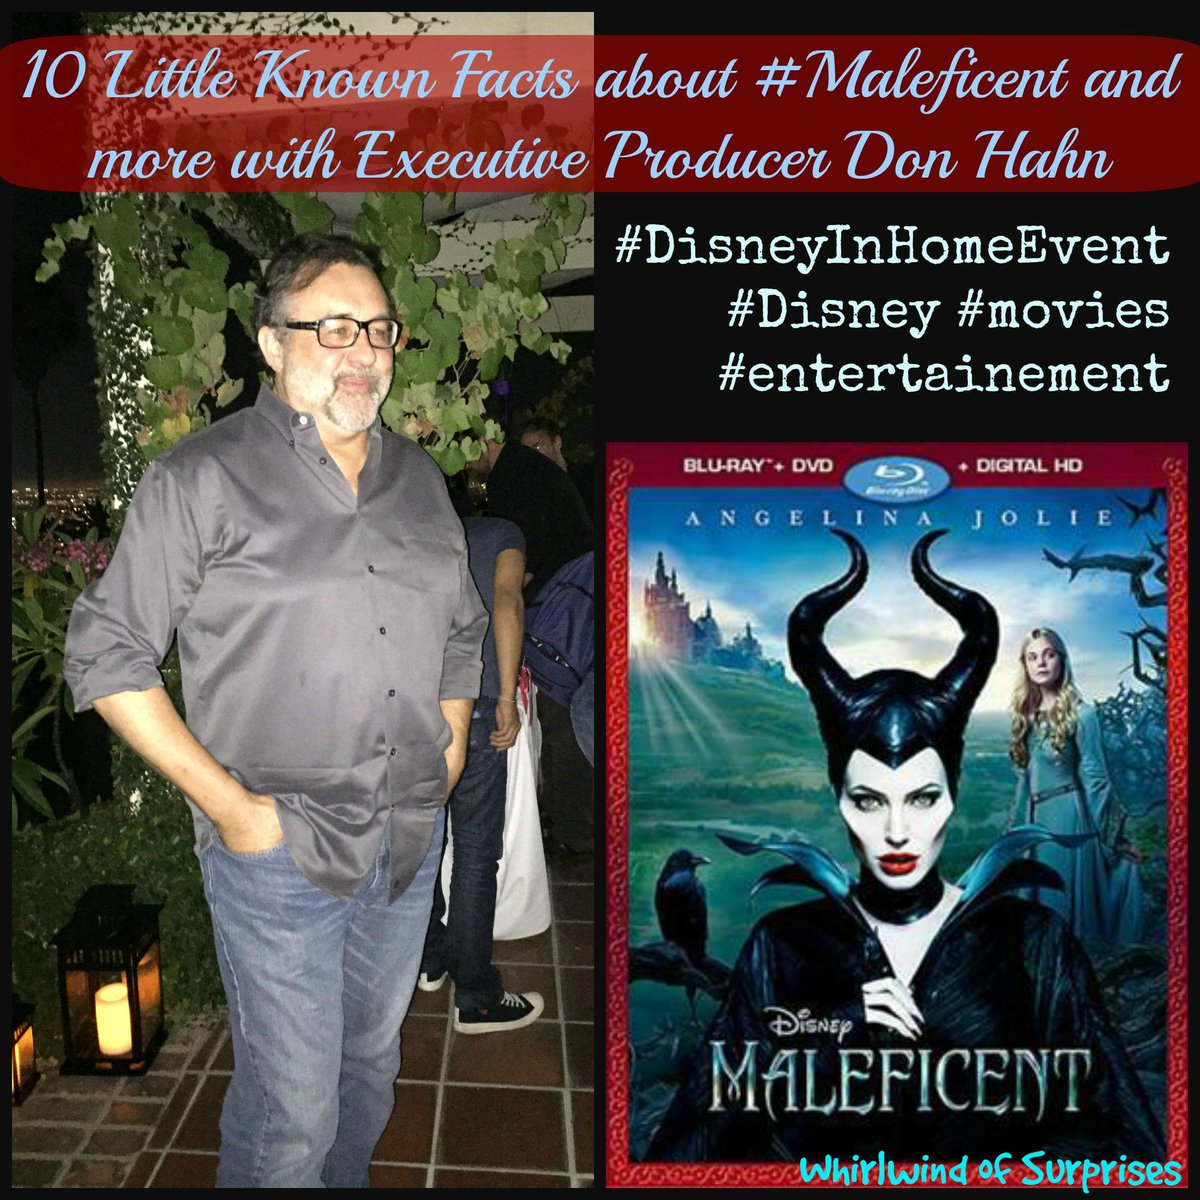 Don Hahn Maleficent Interview and review